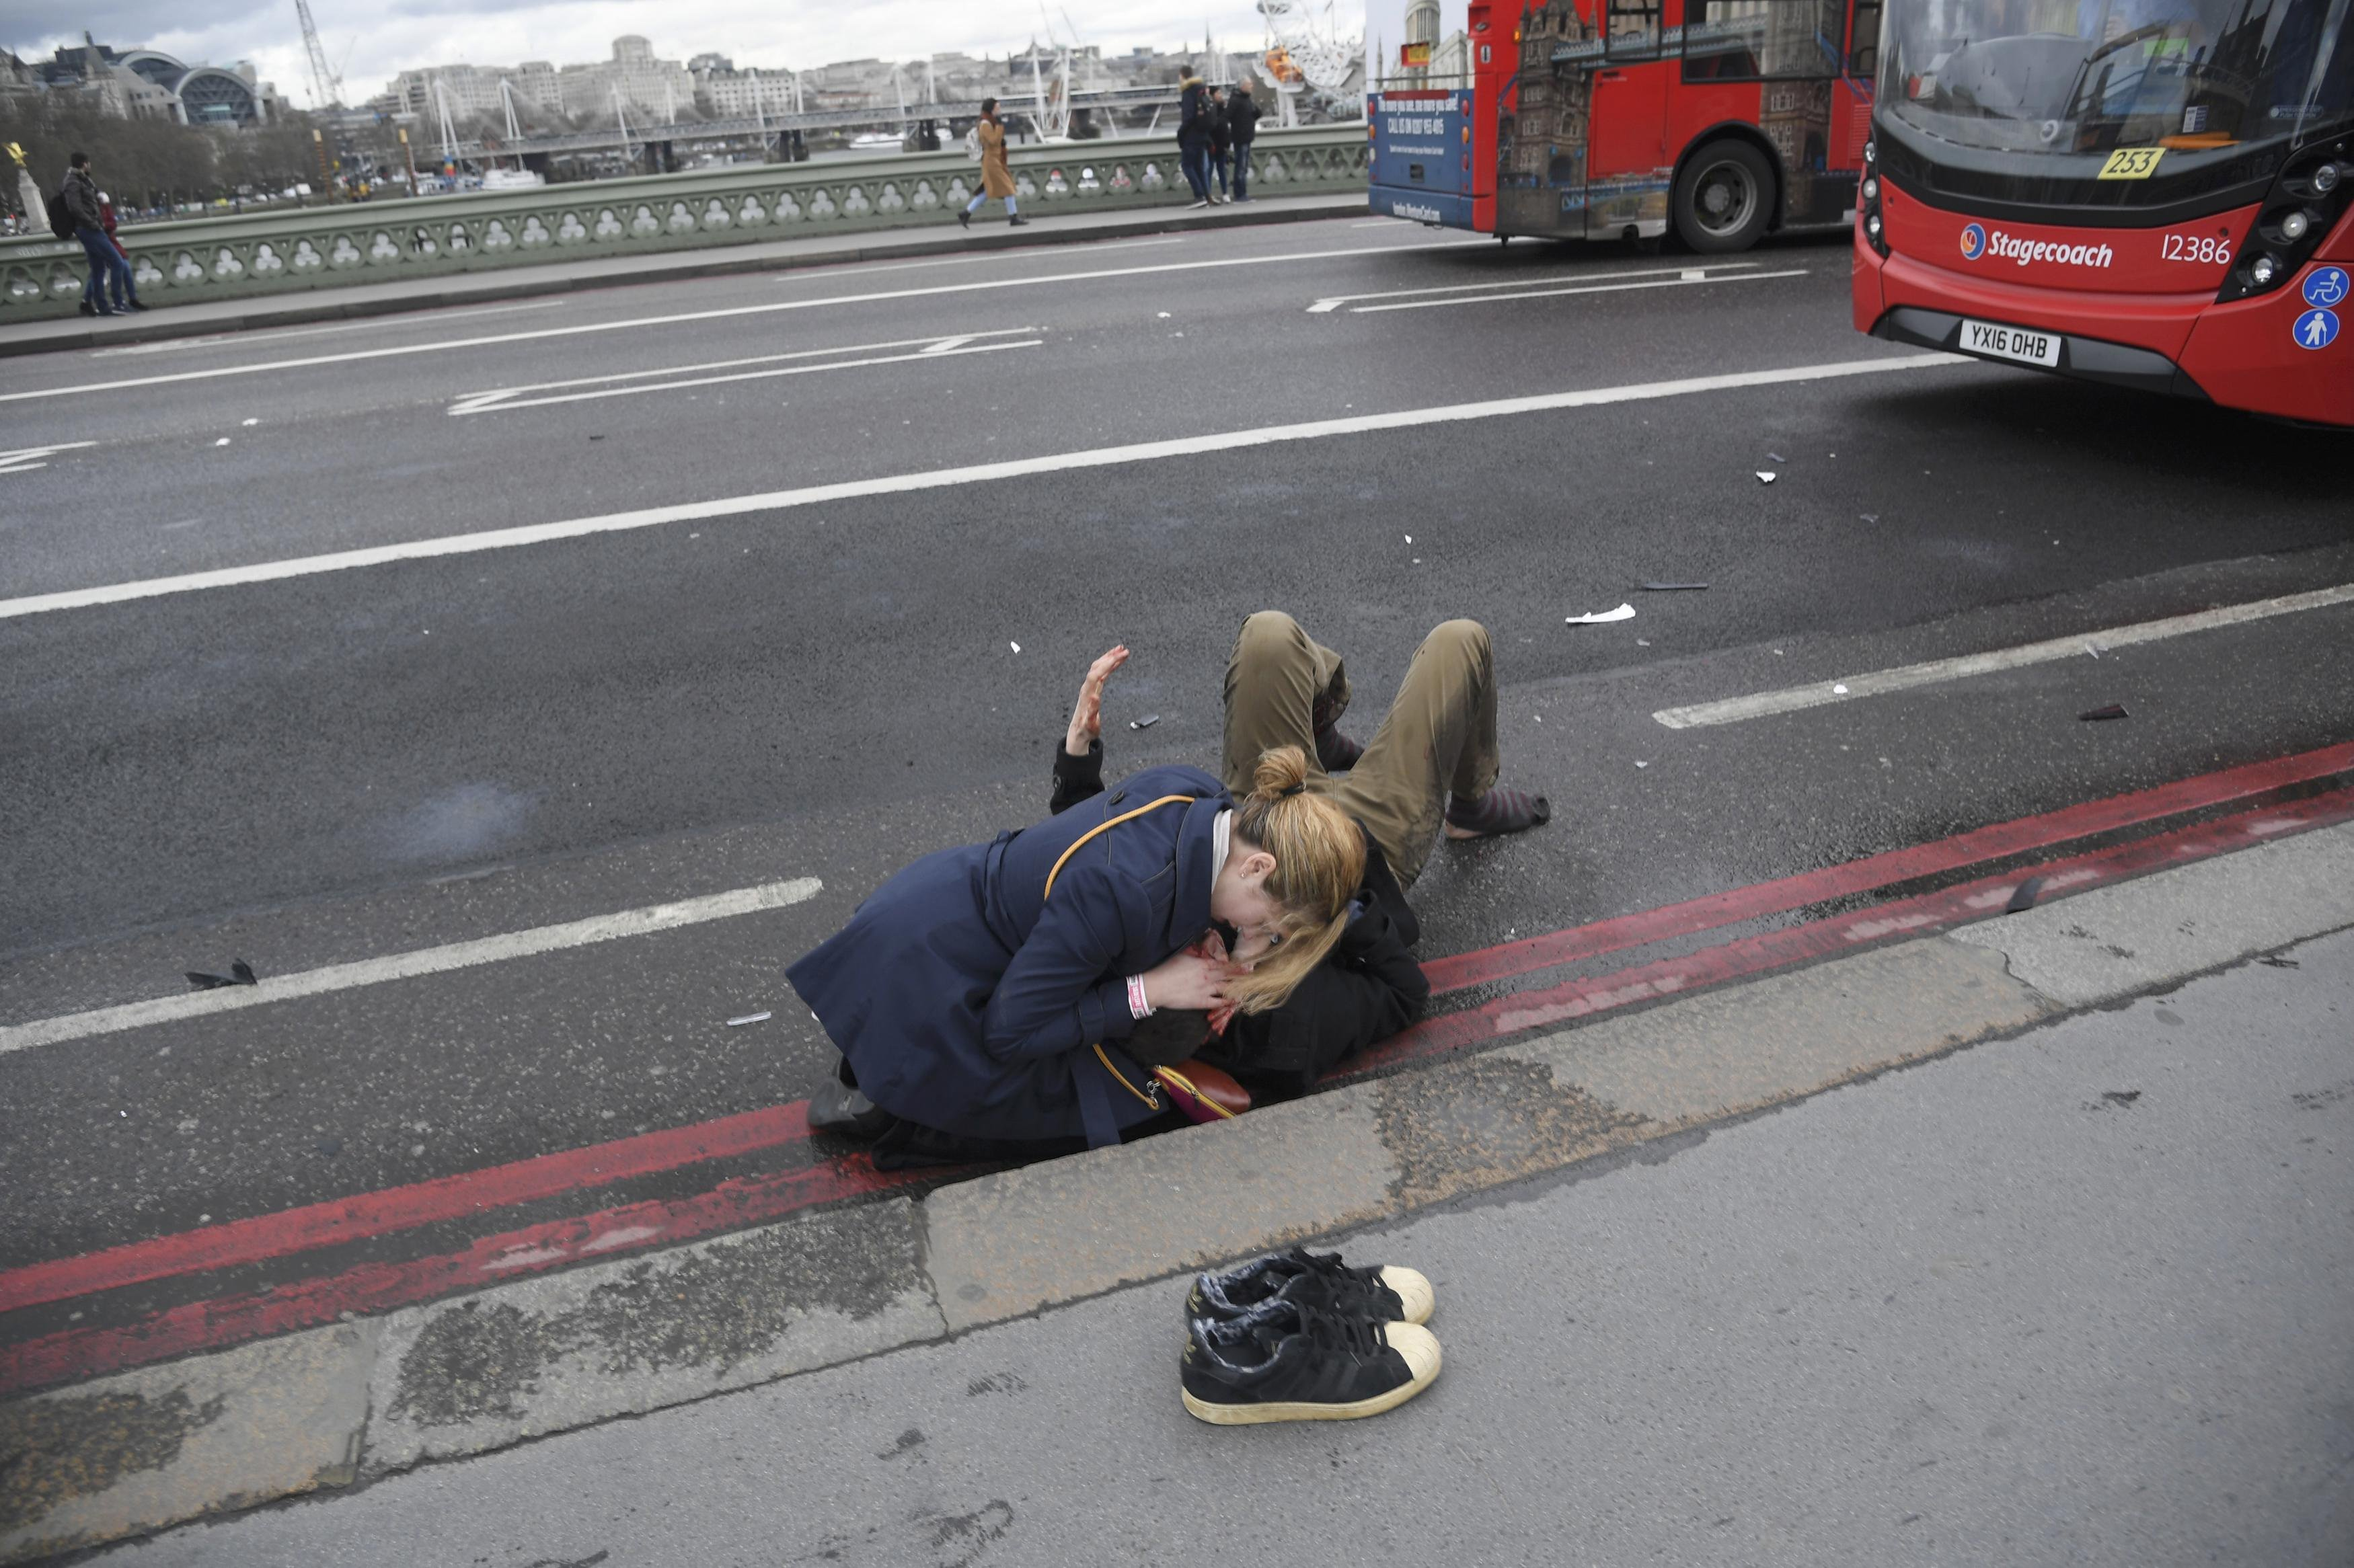 A woman assist an injured person after an incident on Westminster Bridge, on March 22, 2017.